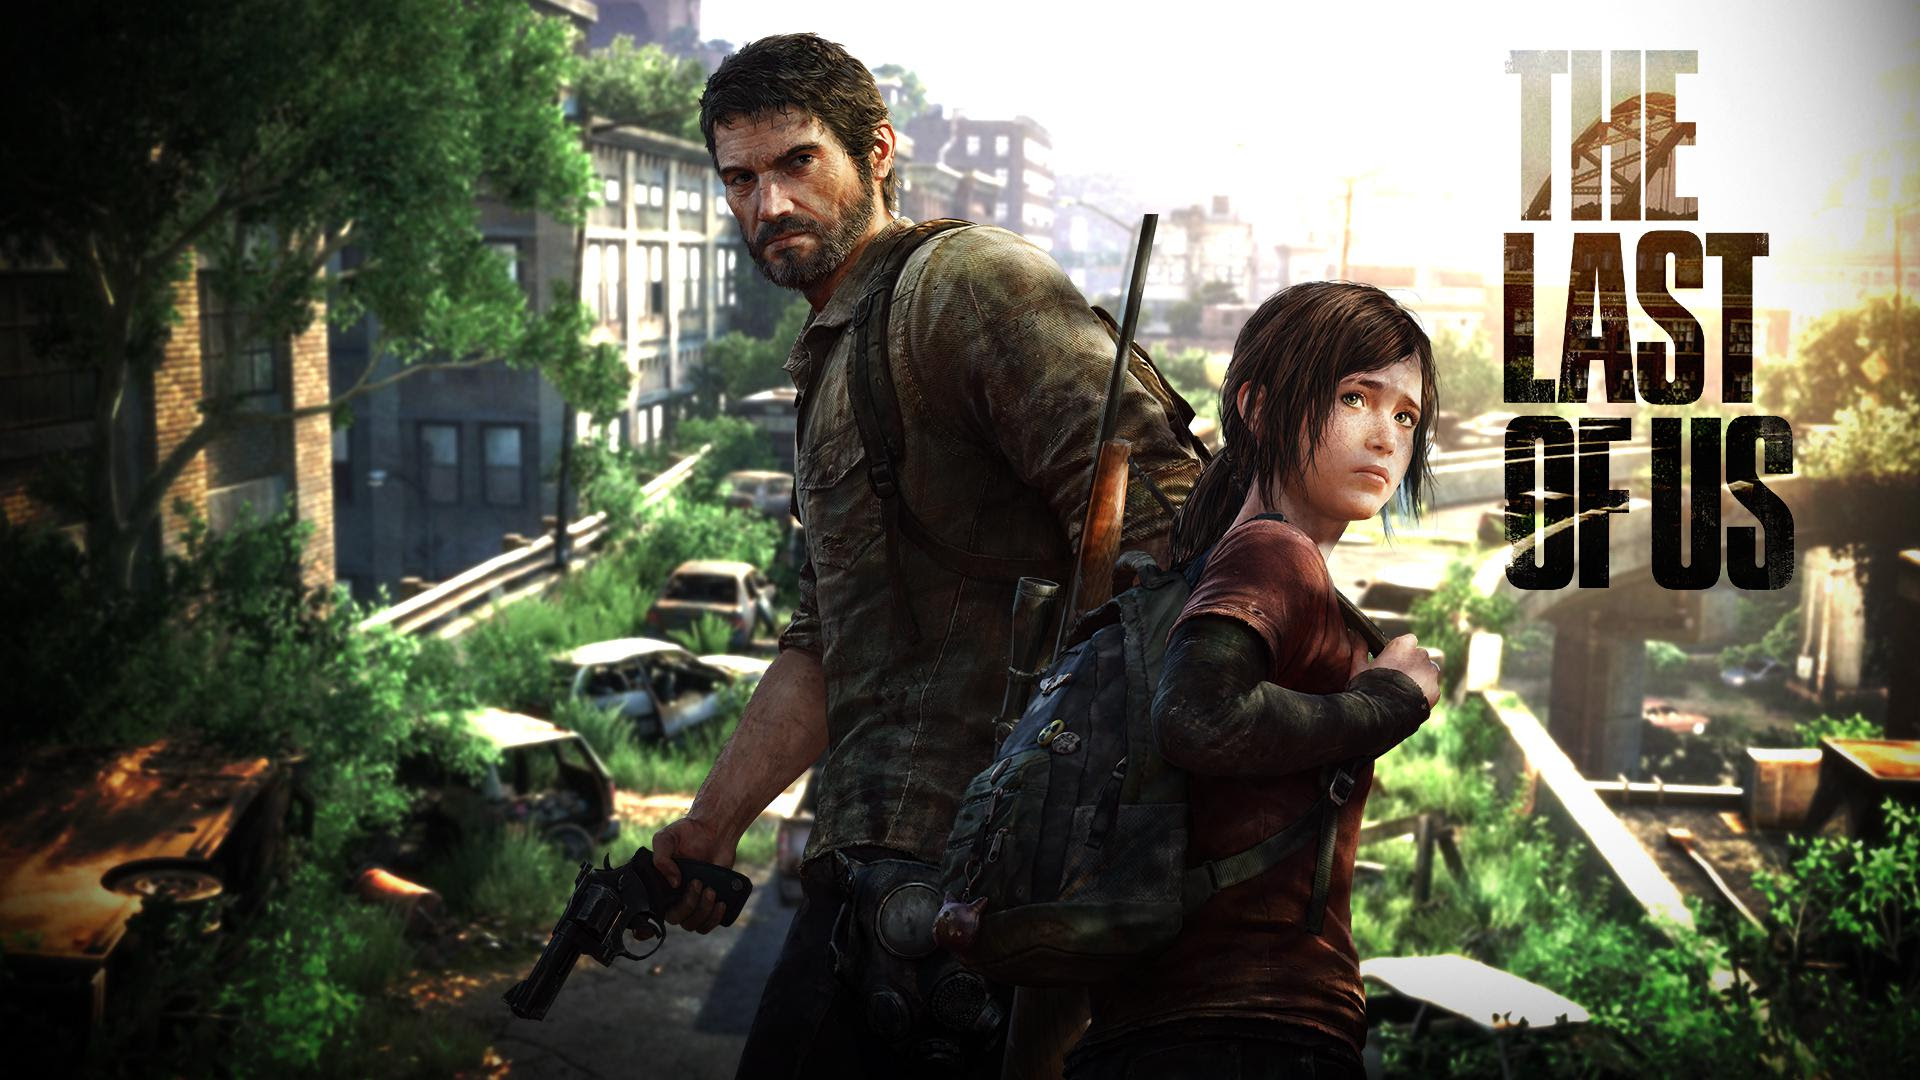 The Last Of Us Wallpaper 1920x1080 67985